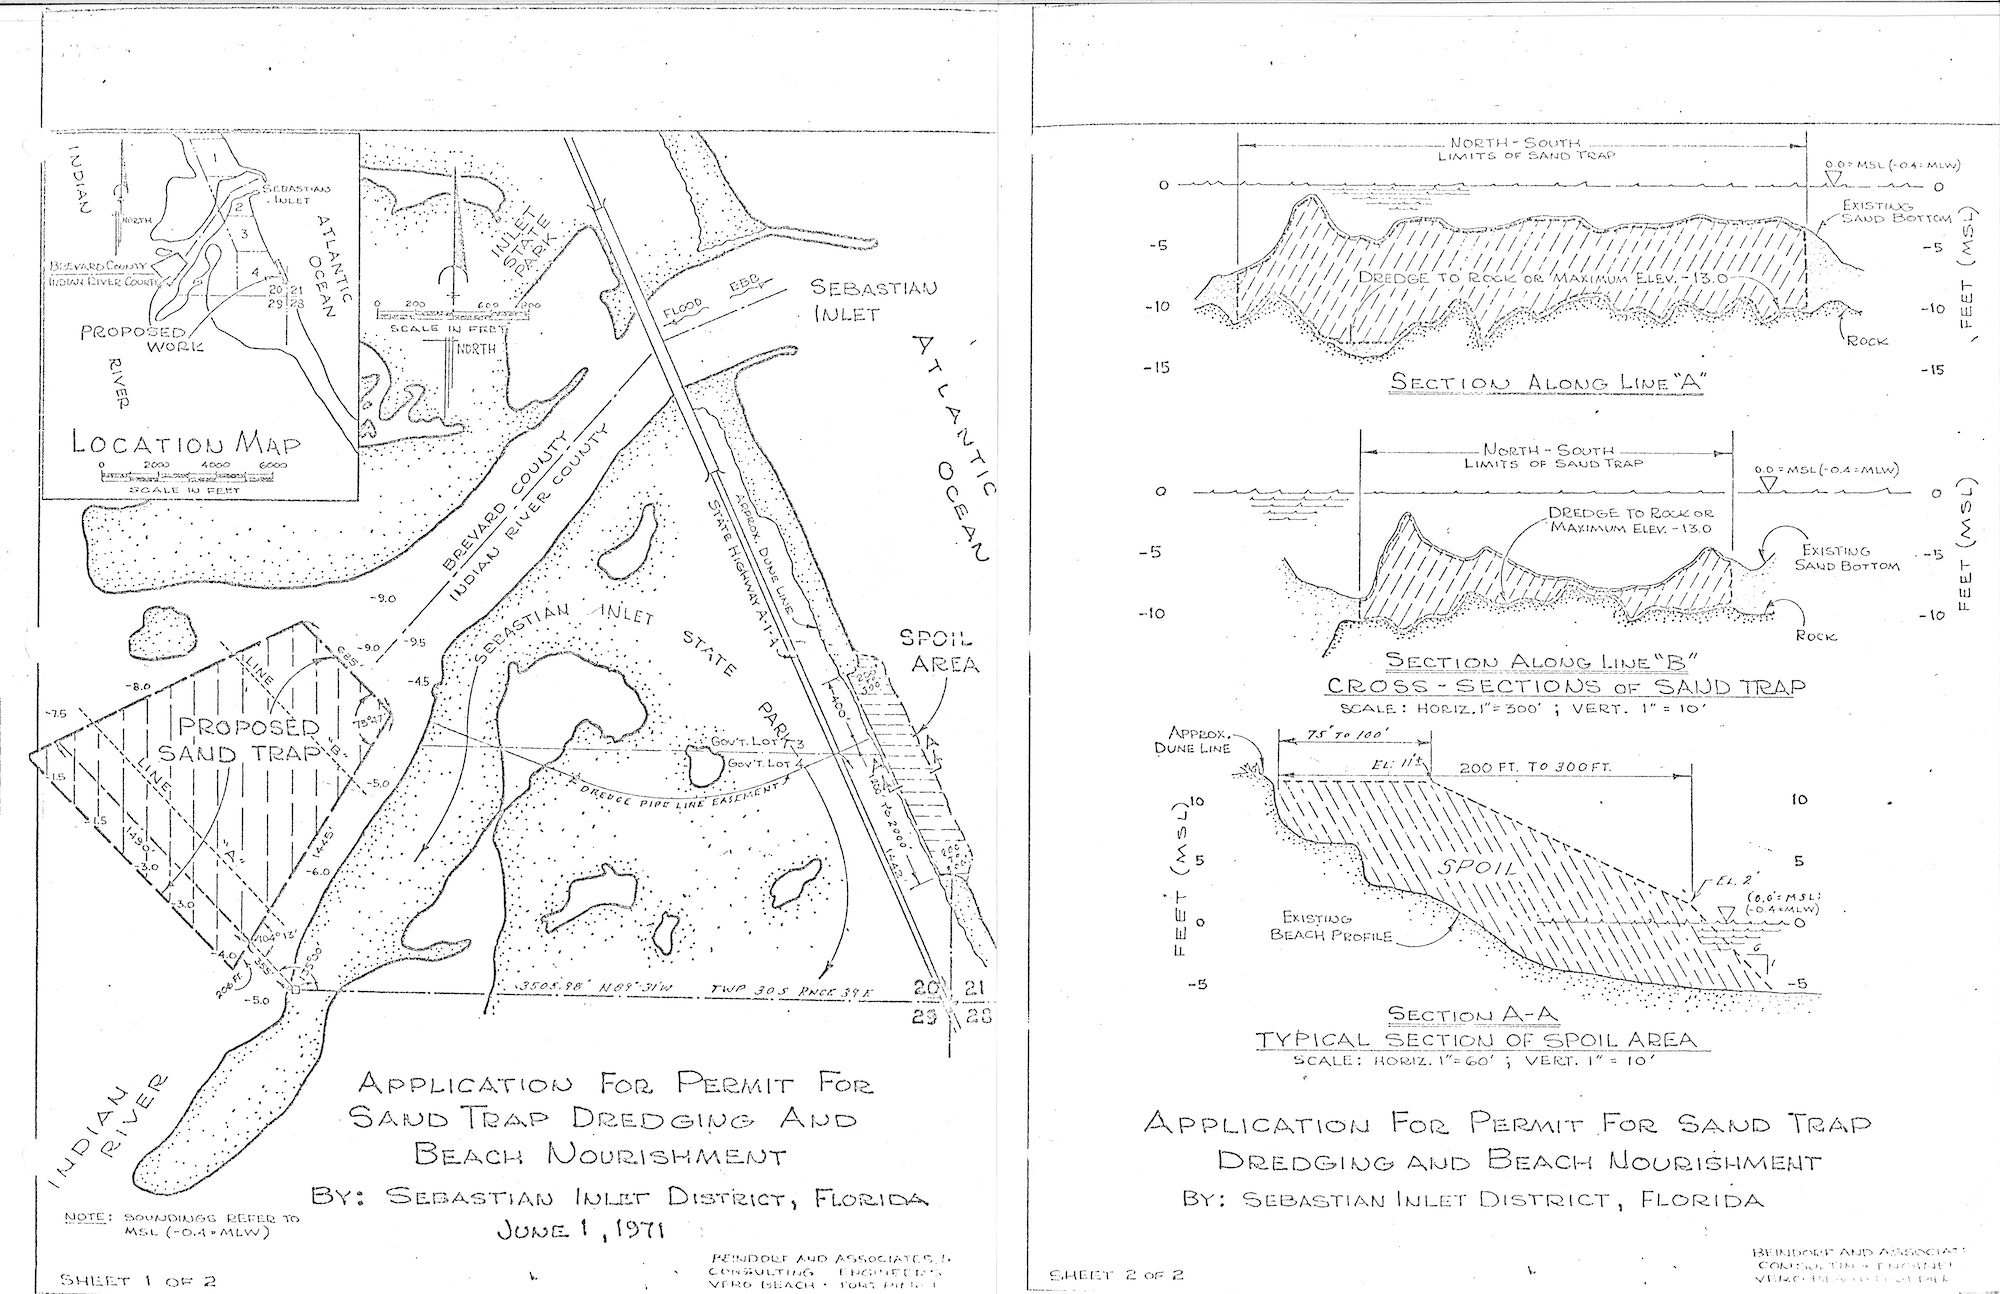 hand drawn map of inlet showing proposed Sand Trap from 1971